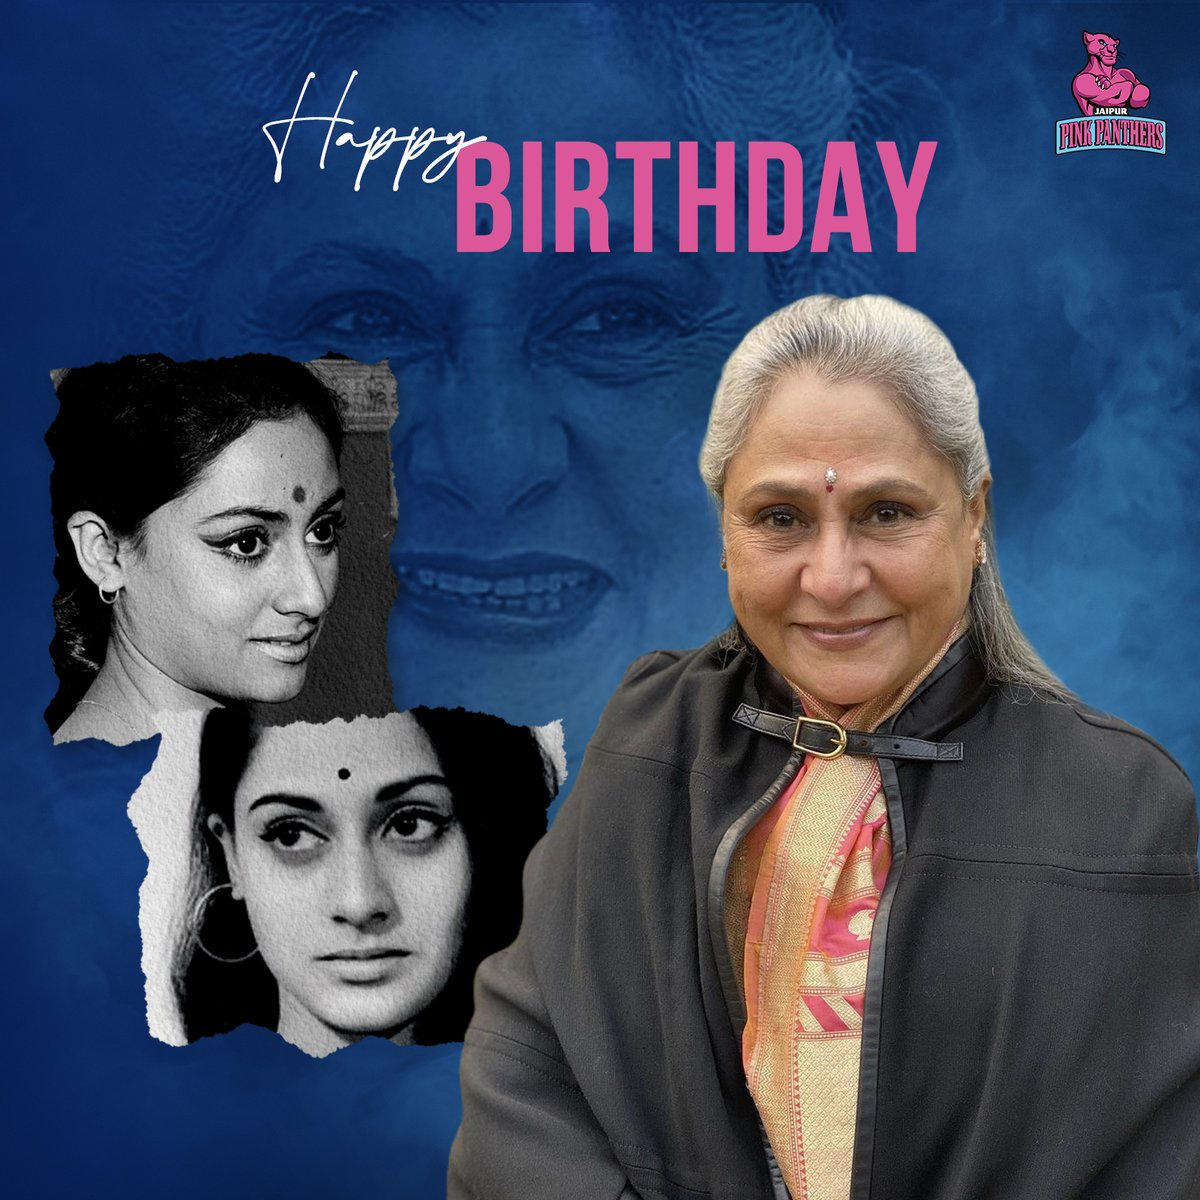 Happy birthday to the wonder woman who means so many different things to our nation. Wishing you a day full of laughter, happiness, and a year that brings you much love, Jaya Bachchan ji! 🎂🙌🏻🎉  #HappyBirthday #PantherSquad #JaiHanuman #TopCats #JaipurPinkPanthers #JPP #Jaipur